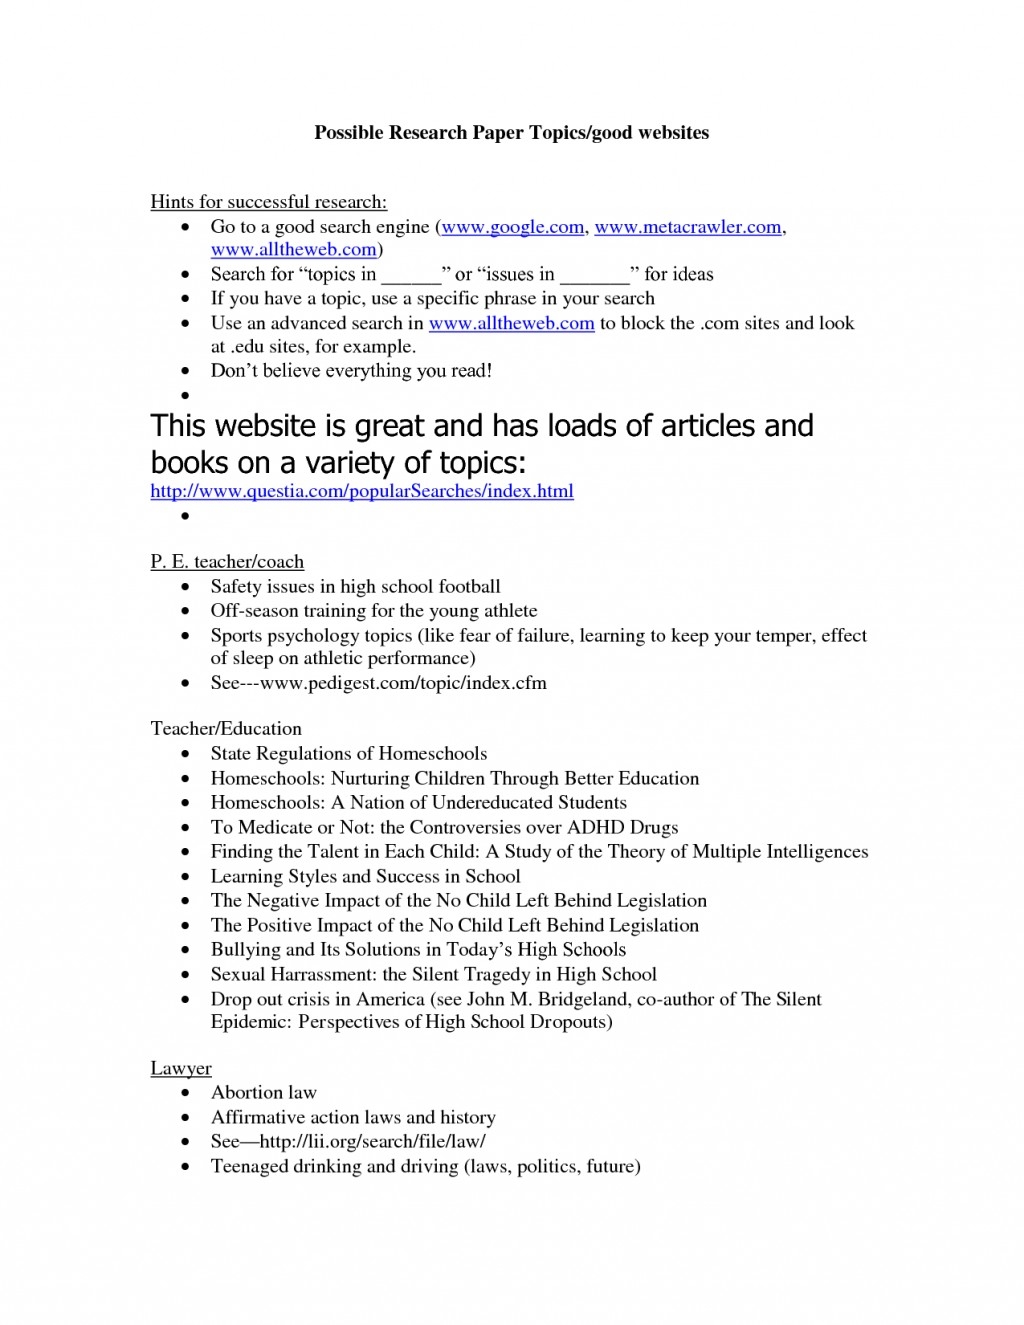 002 Interesting Topics For Research Paper College Best Solutions Of Fabulous Papers High School Rare Students In The Philippines History Technology Large